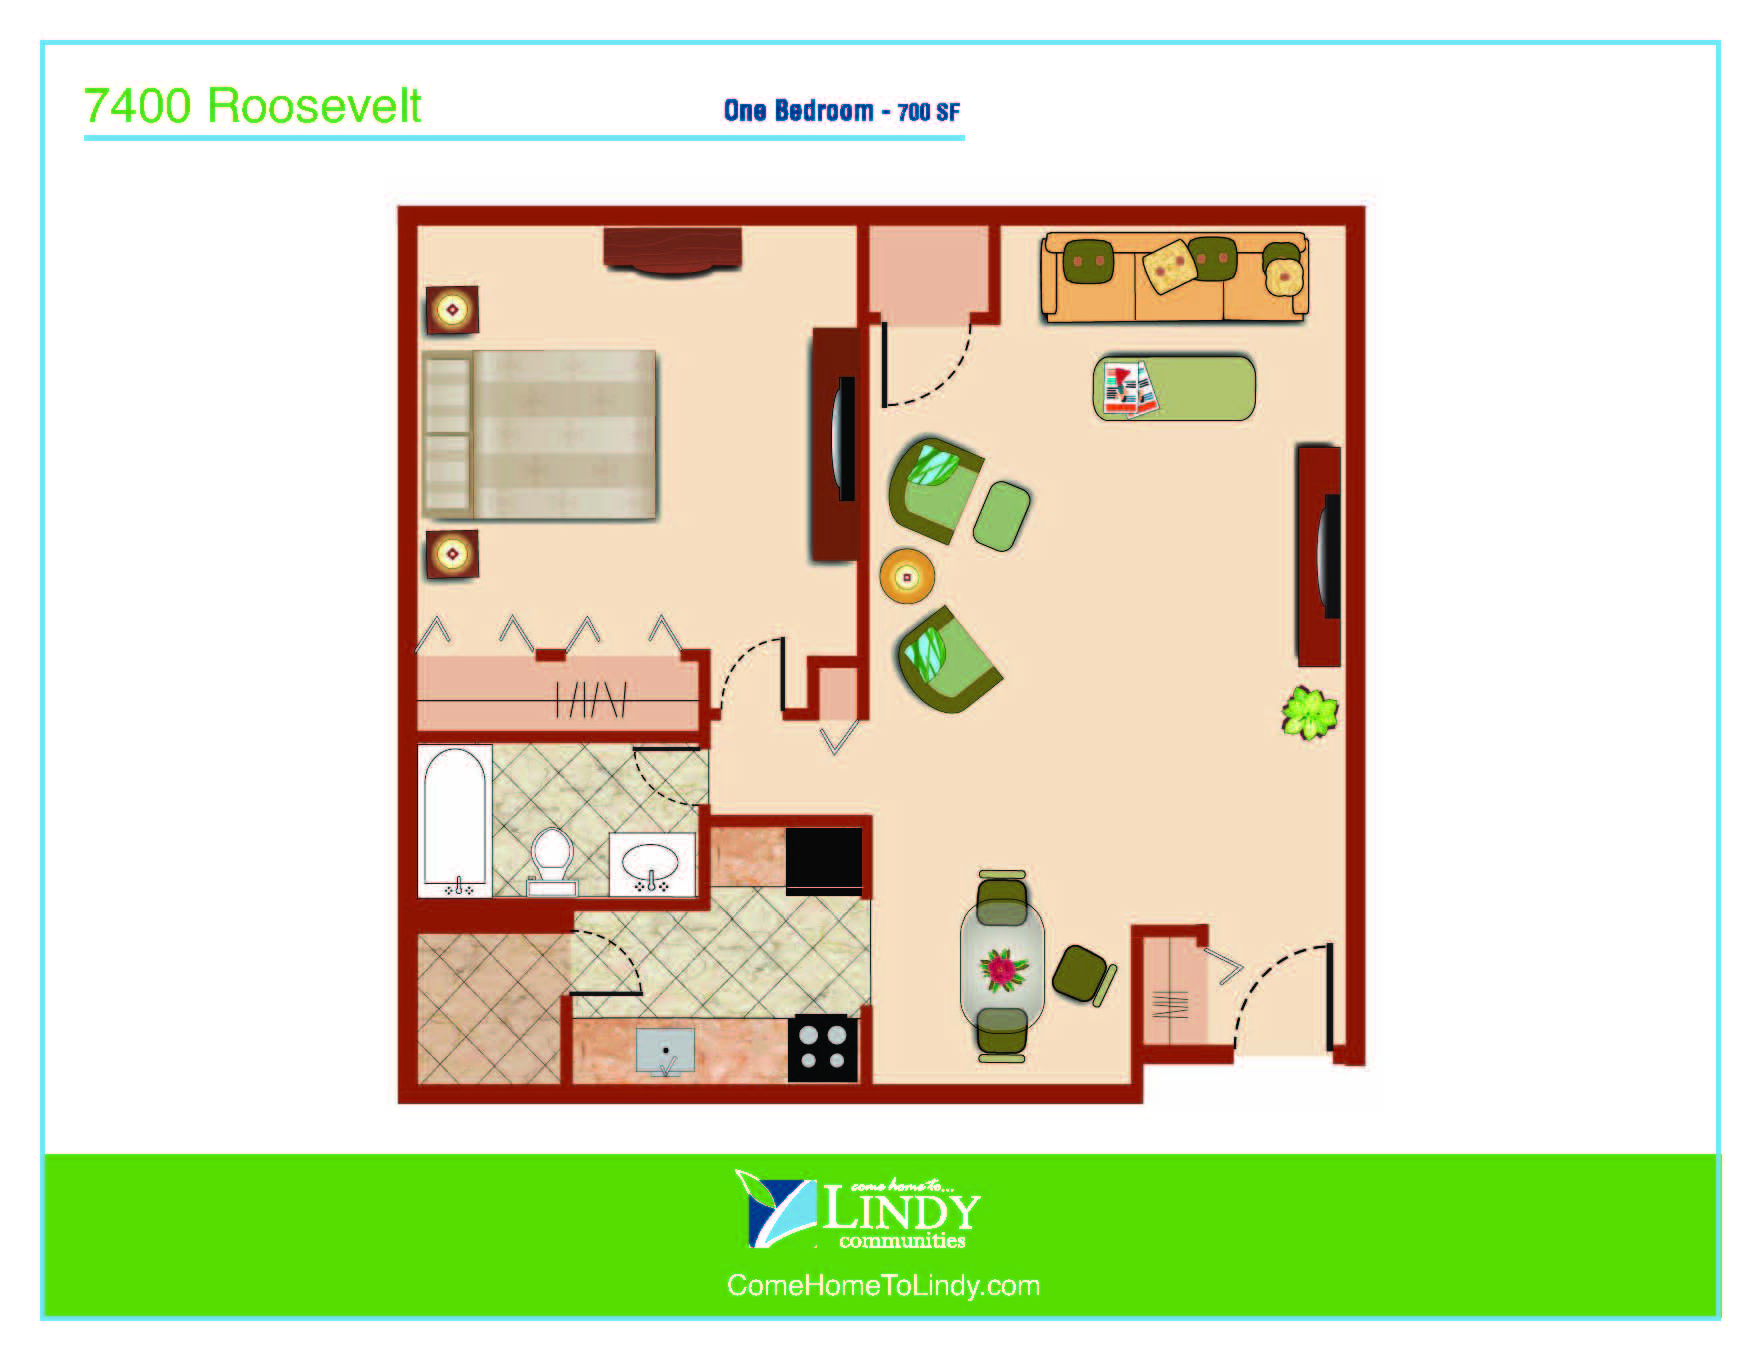 700 square foot 1 bedroom apartment with 1 bathroom.